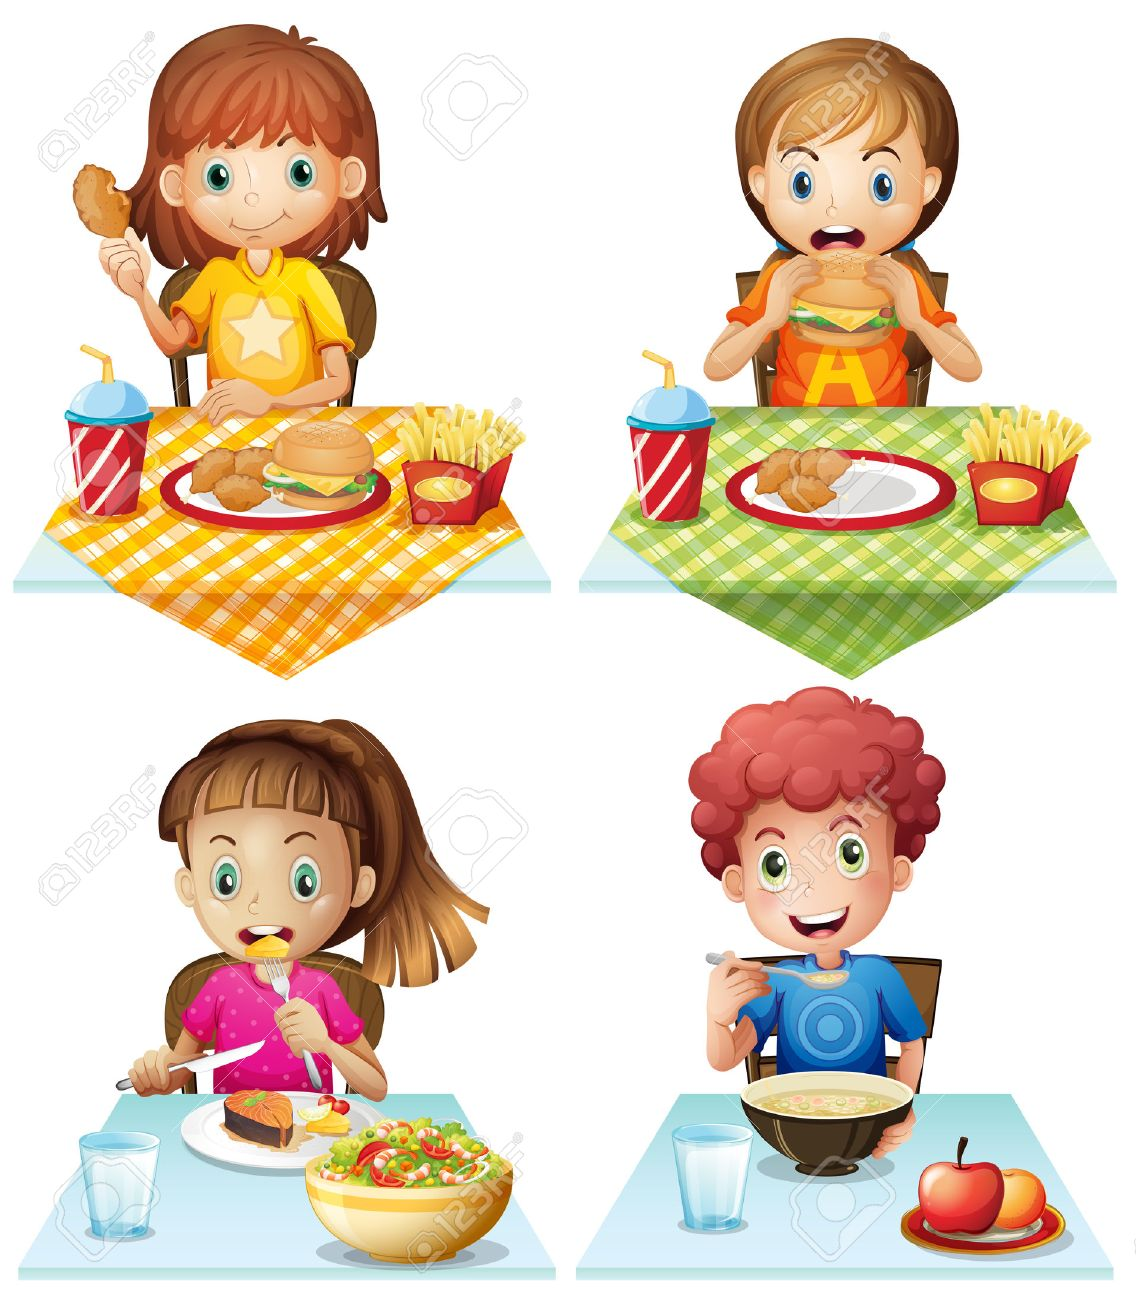 Kids Eating Junk Food Clipart